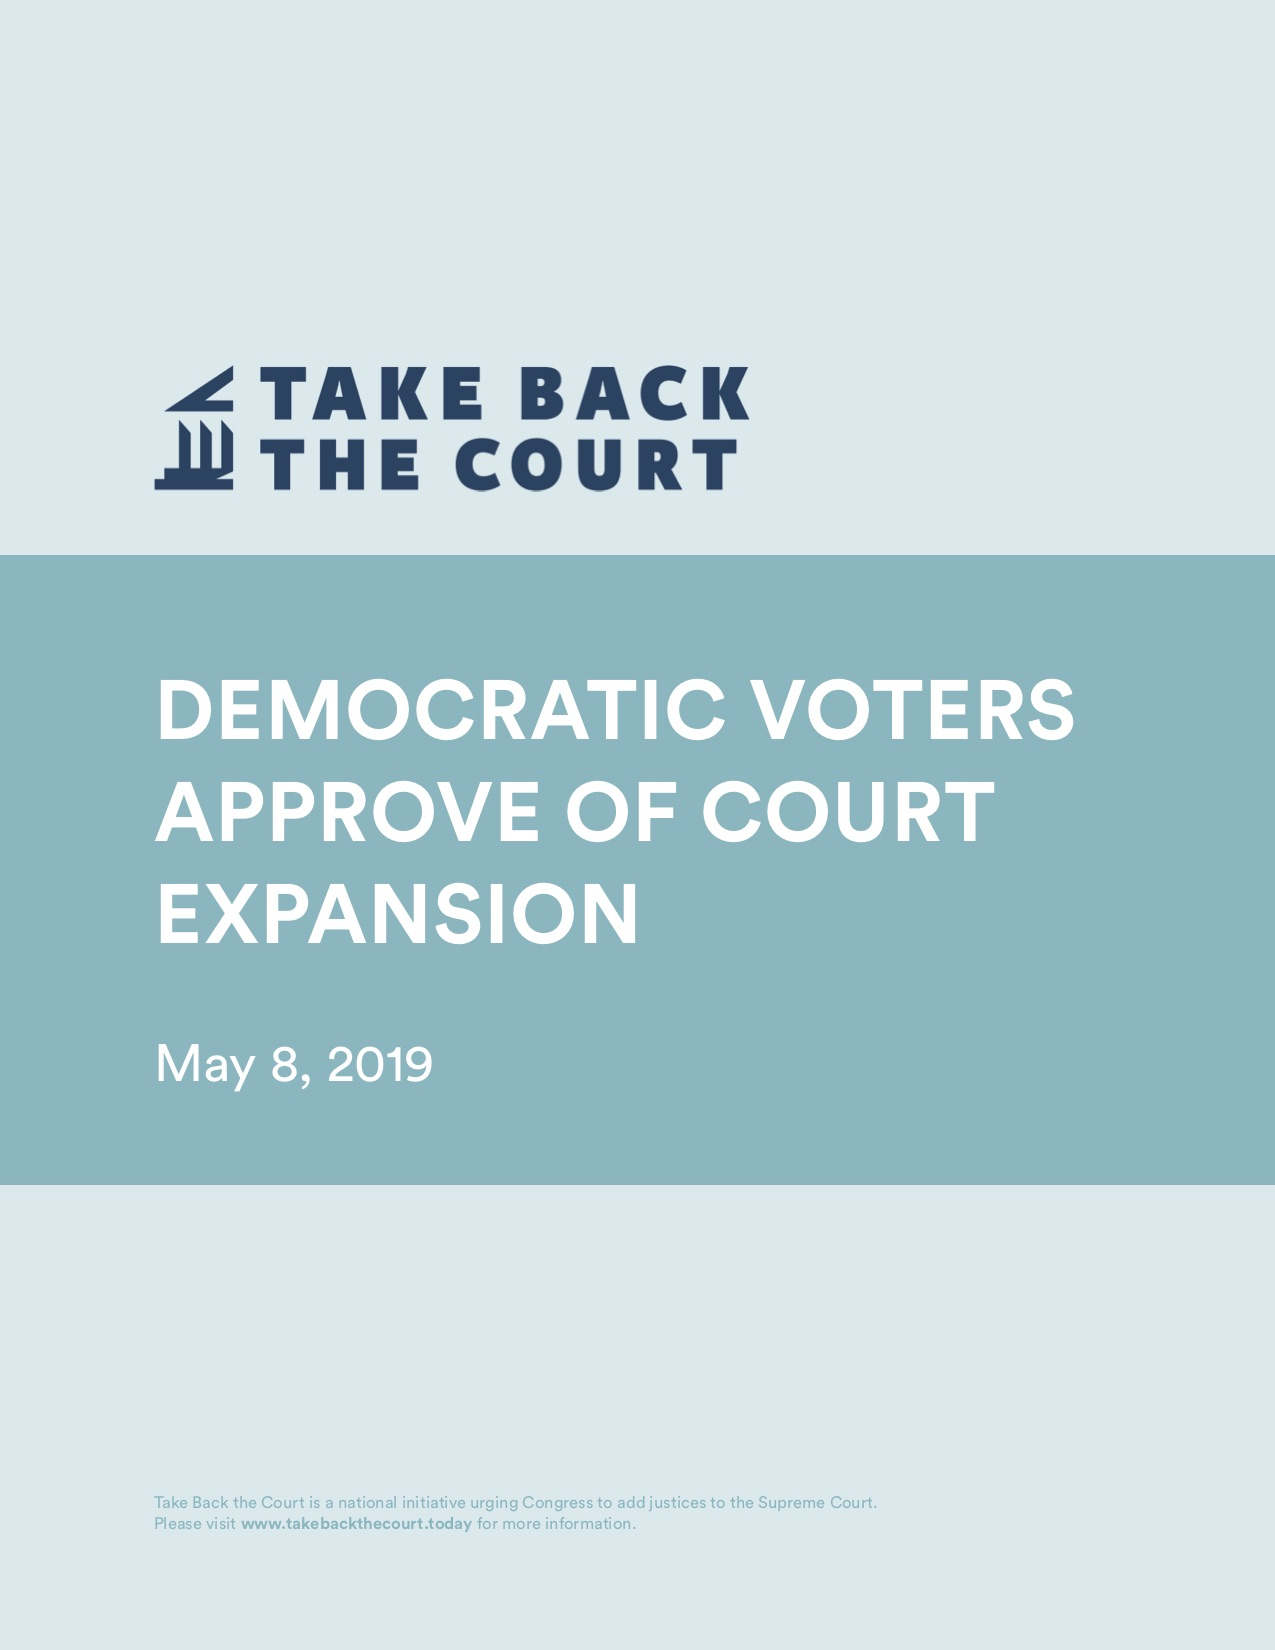 Democratic+Voters+Approve+of+Court+Expansion-1.jpg